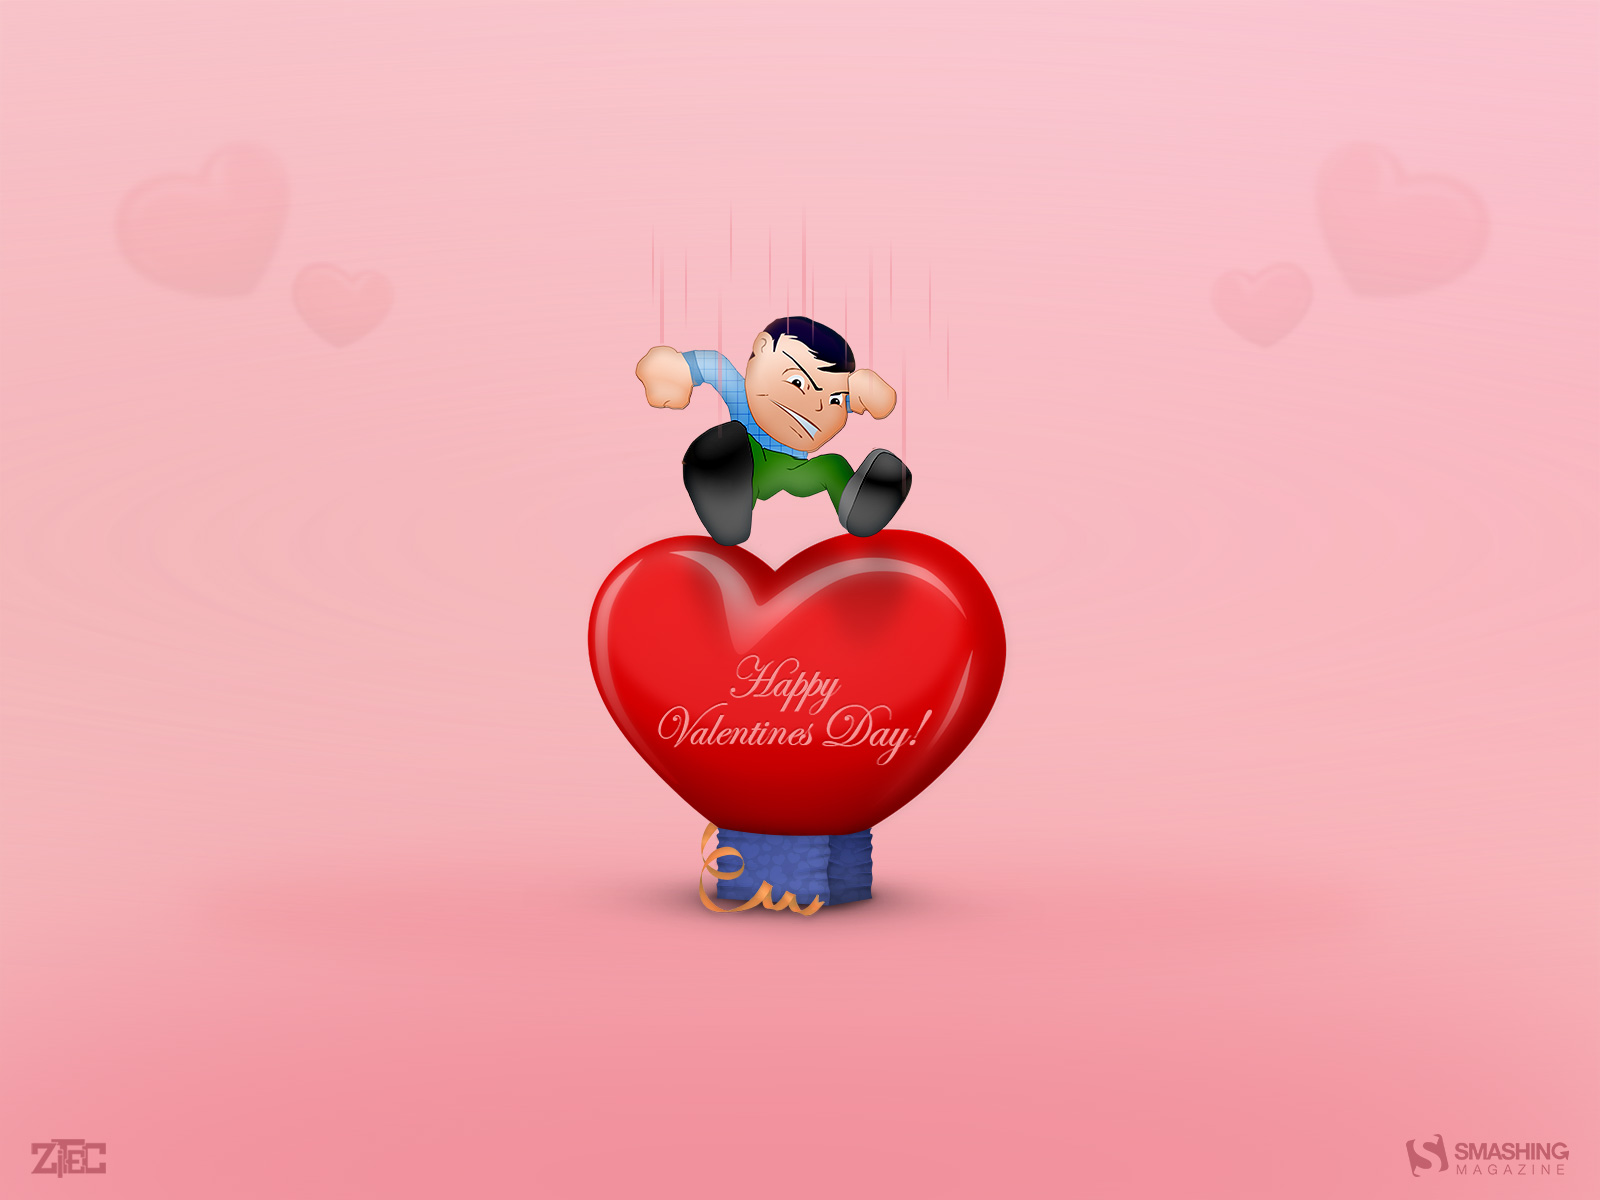 c8dcfe30540ff8 59 Valentines Day Wallpapers   Love and Hearts — Smashing Magazine